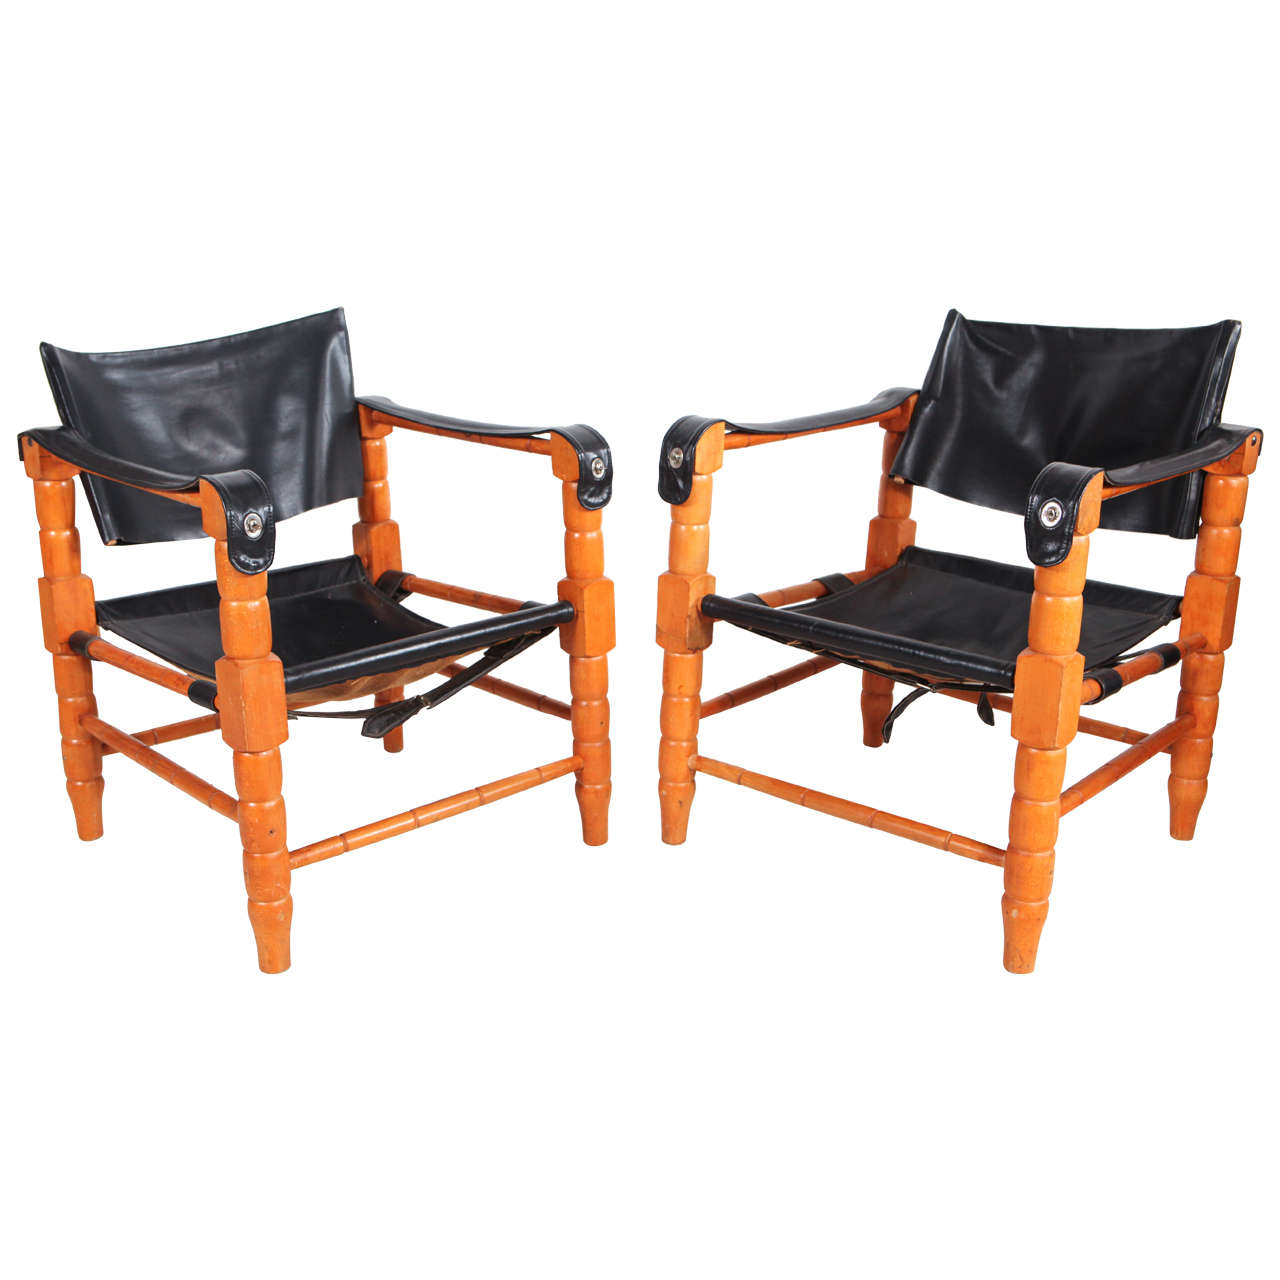 black spindle chair cheap vanity pair of safari style leather and wood framed